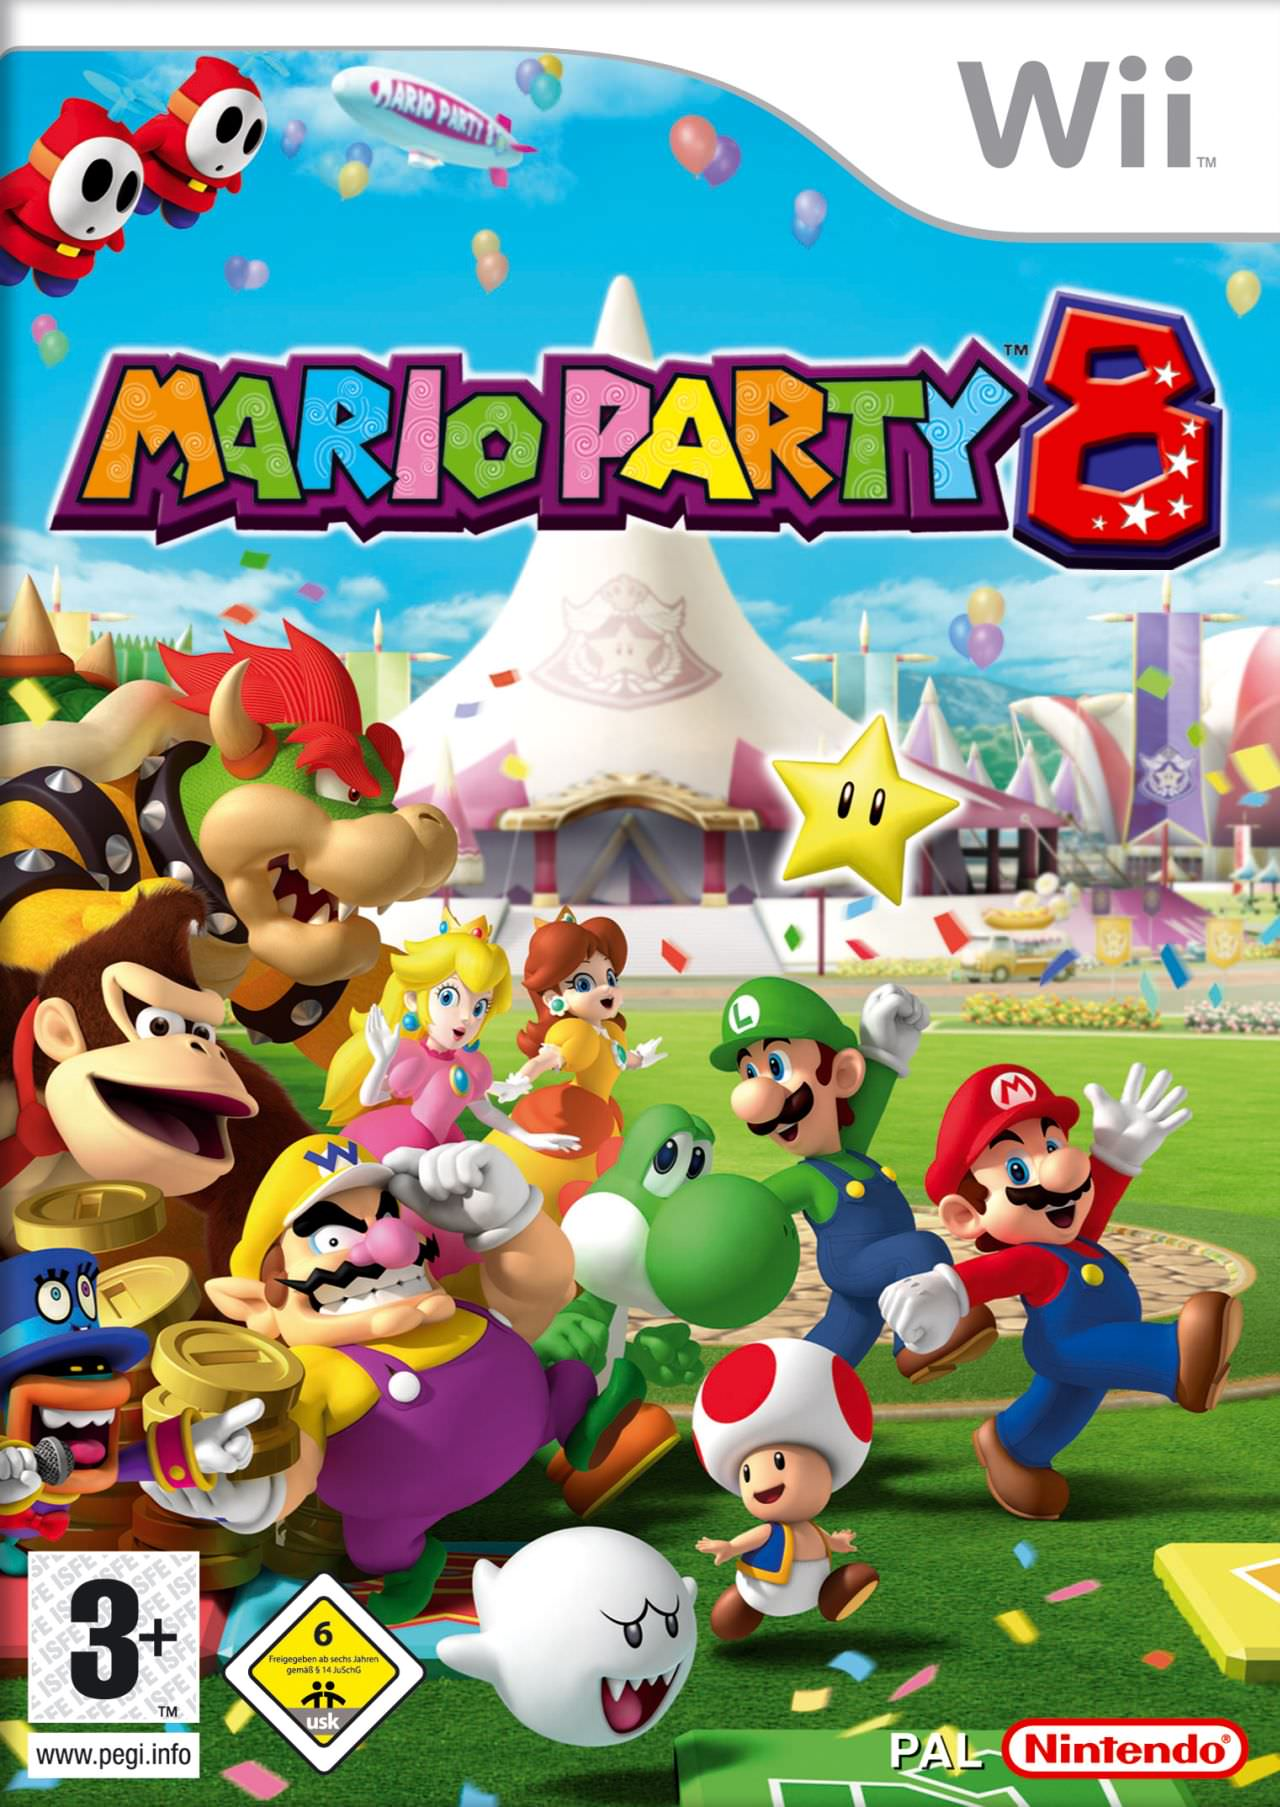 NGamer Issue 12 (August 2007) Mario-party-8-wii